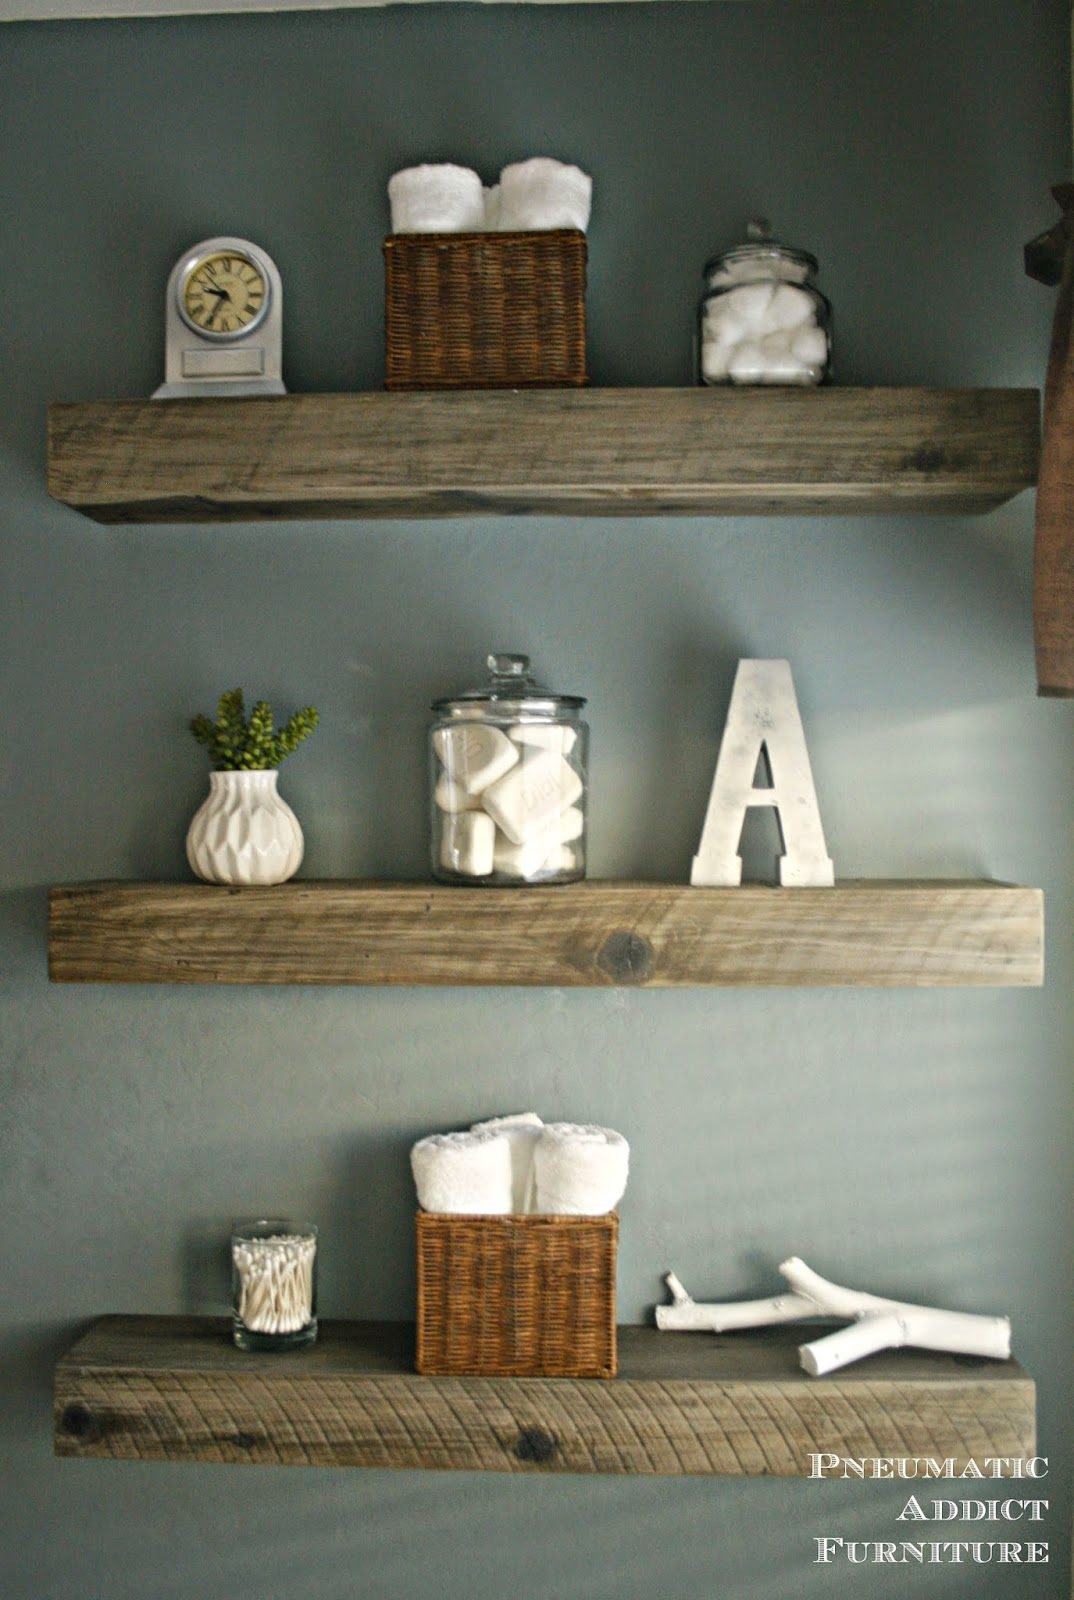 how create weathered barnwood look with this inexpensive reclaimed wood floating kitchen shelves faux for less substitute wall mount dvd storage shelf computer desk shelving